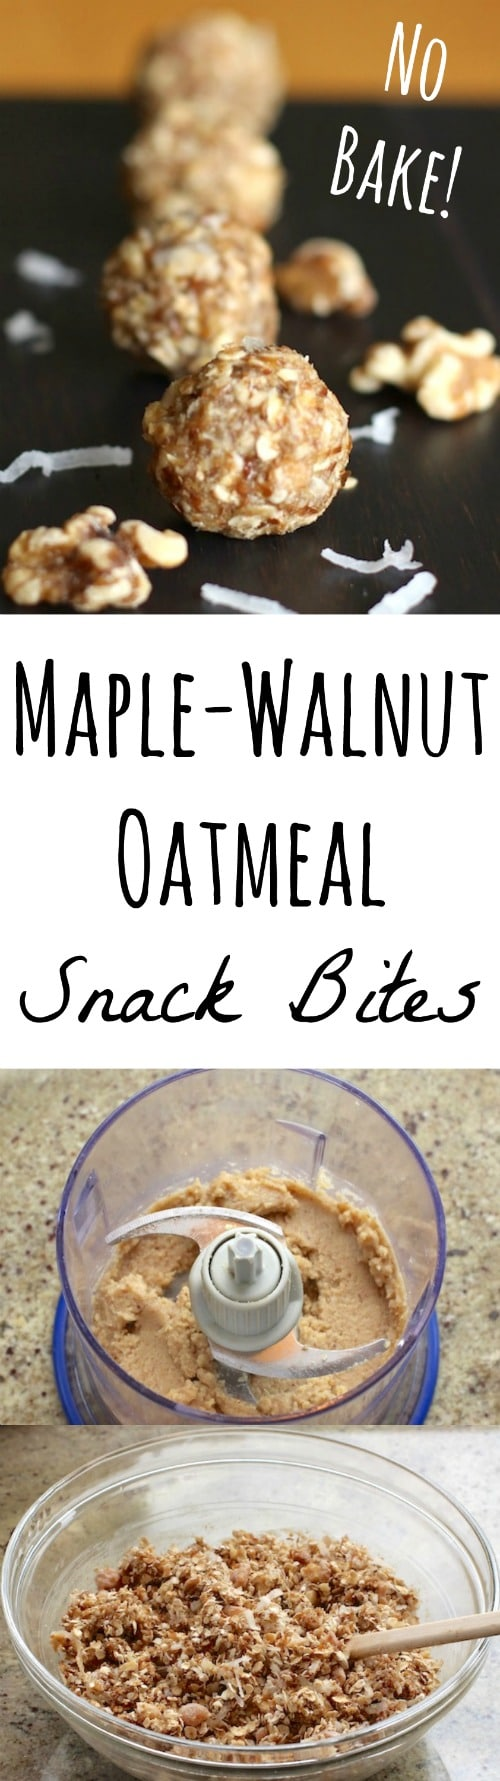 No-Bake Maple-Walnut Oatmeal Snack Bites Recipe {www.TwoHealthyKitchens.com}